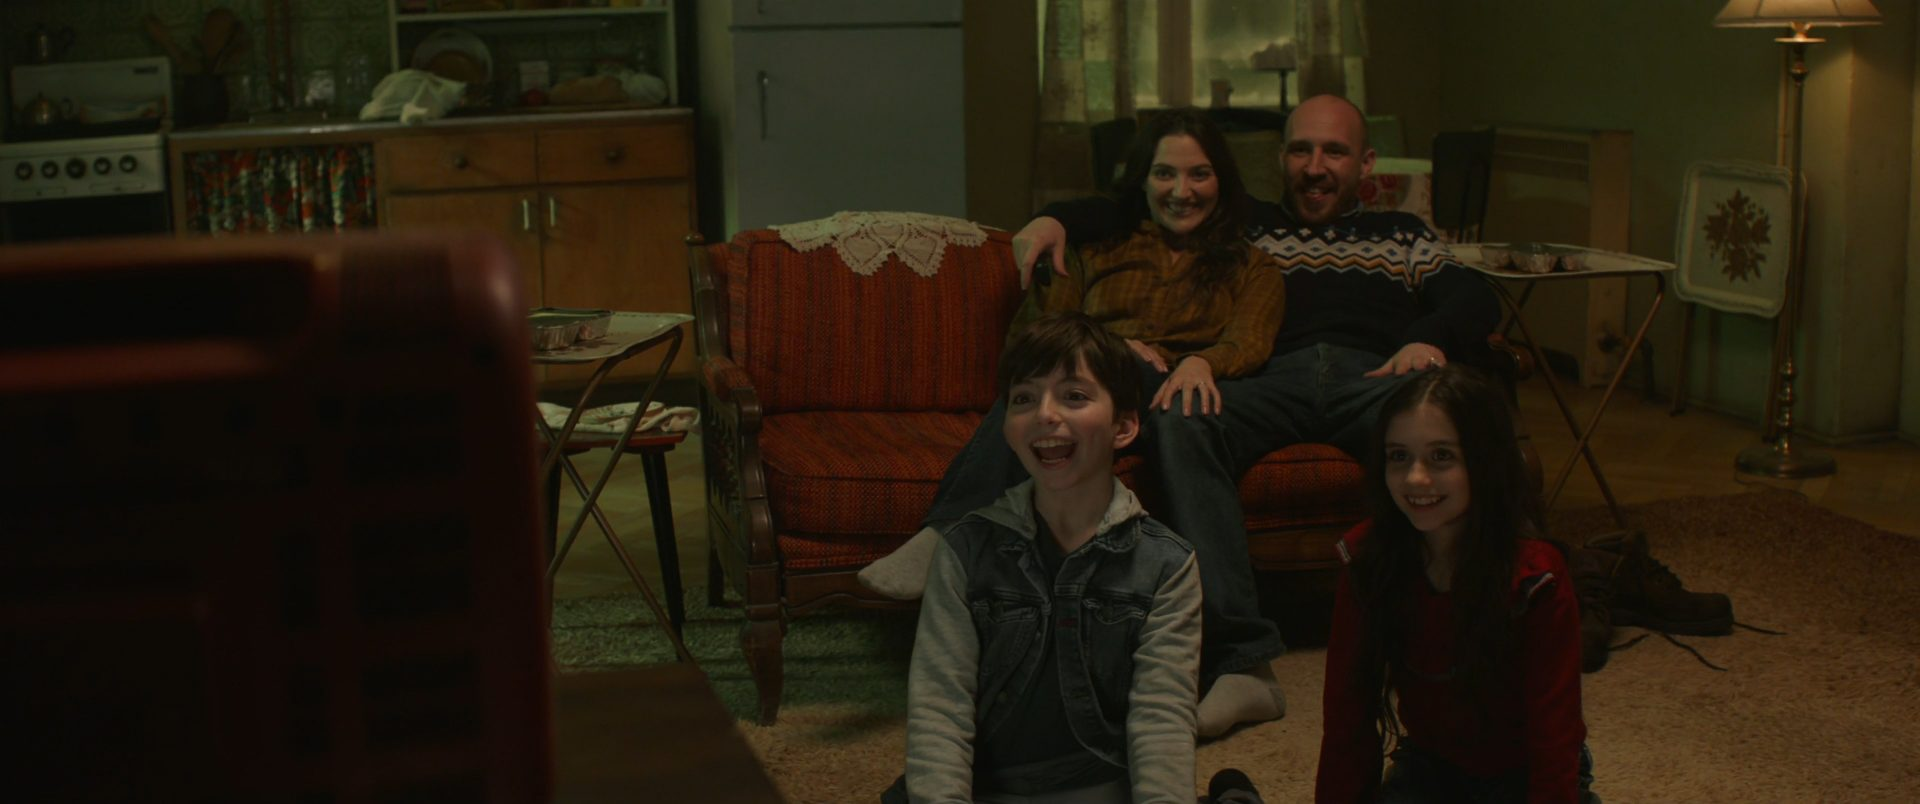 Young Wanda watches TV with her family in a WandaVision flashback.